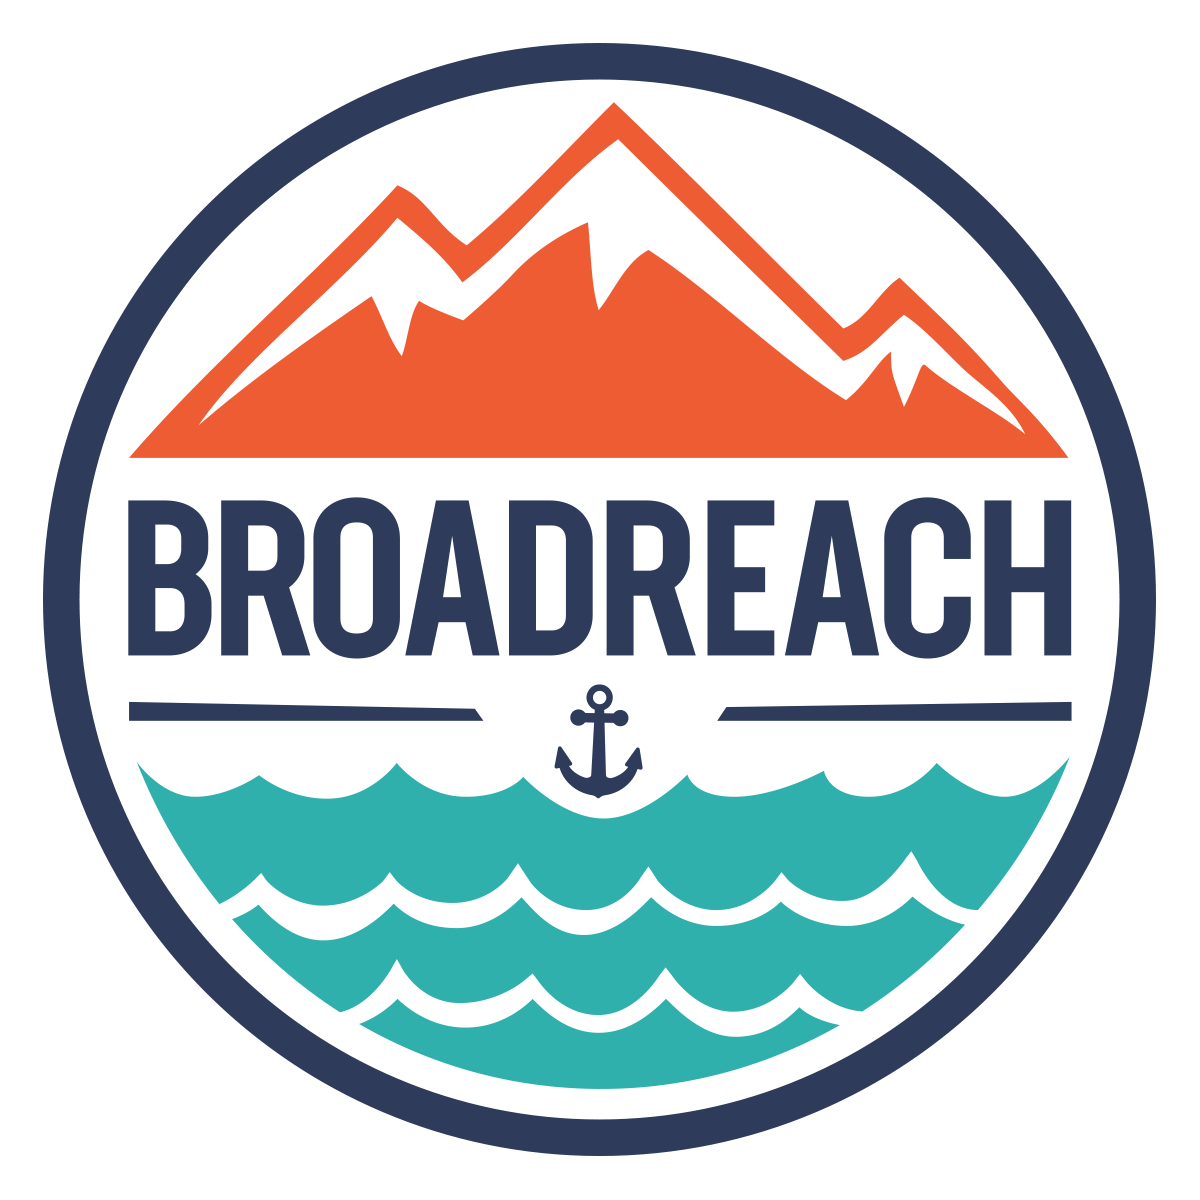 Broadreach Summer Programs Logo